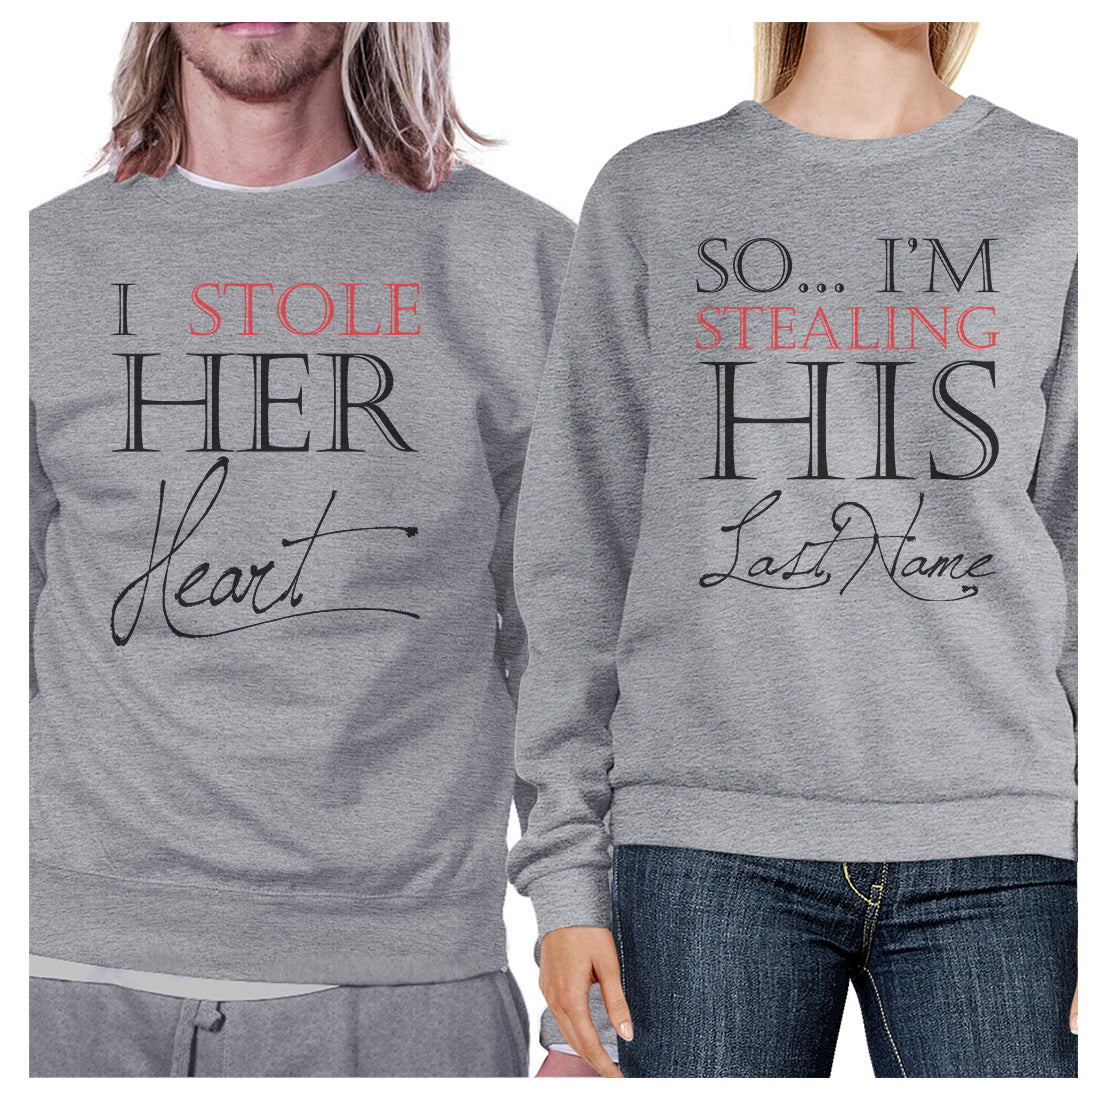 Stealing Last Name Matching Sweatshirt Pullover Cute Honeymoon Gift